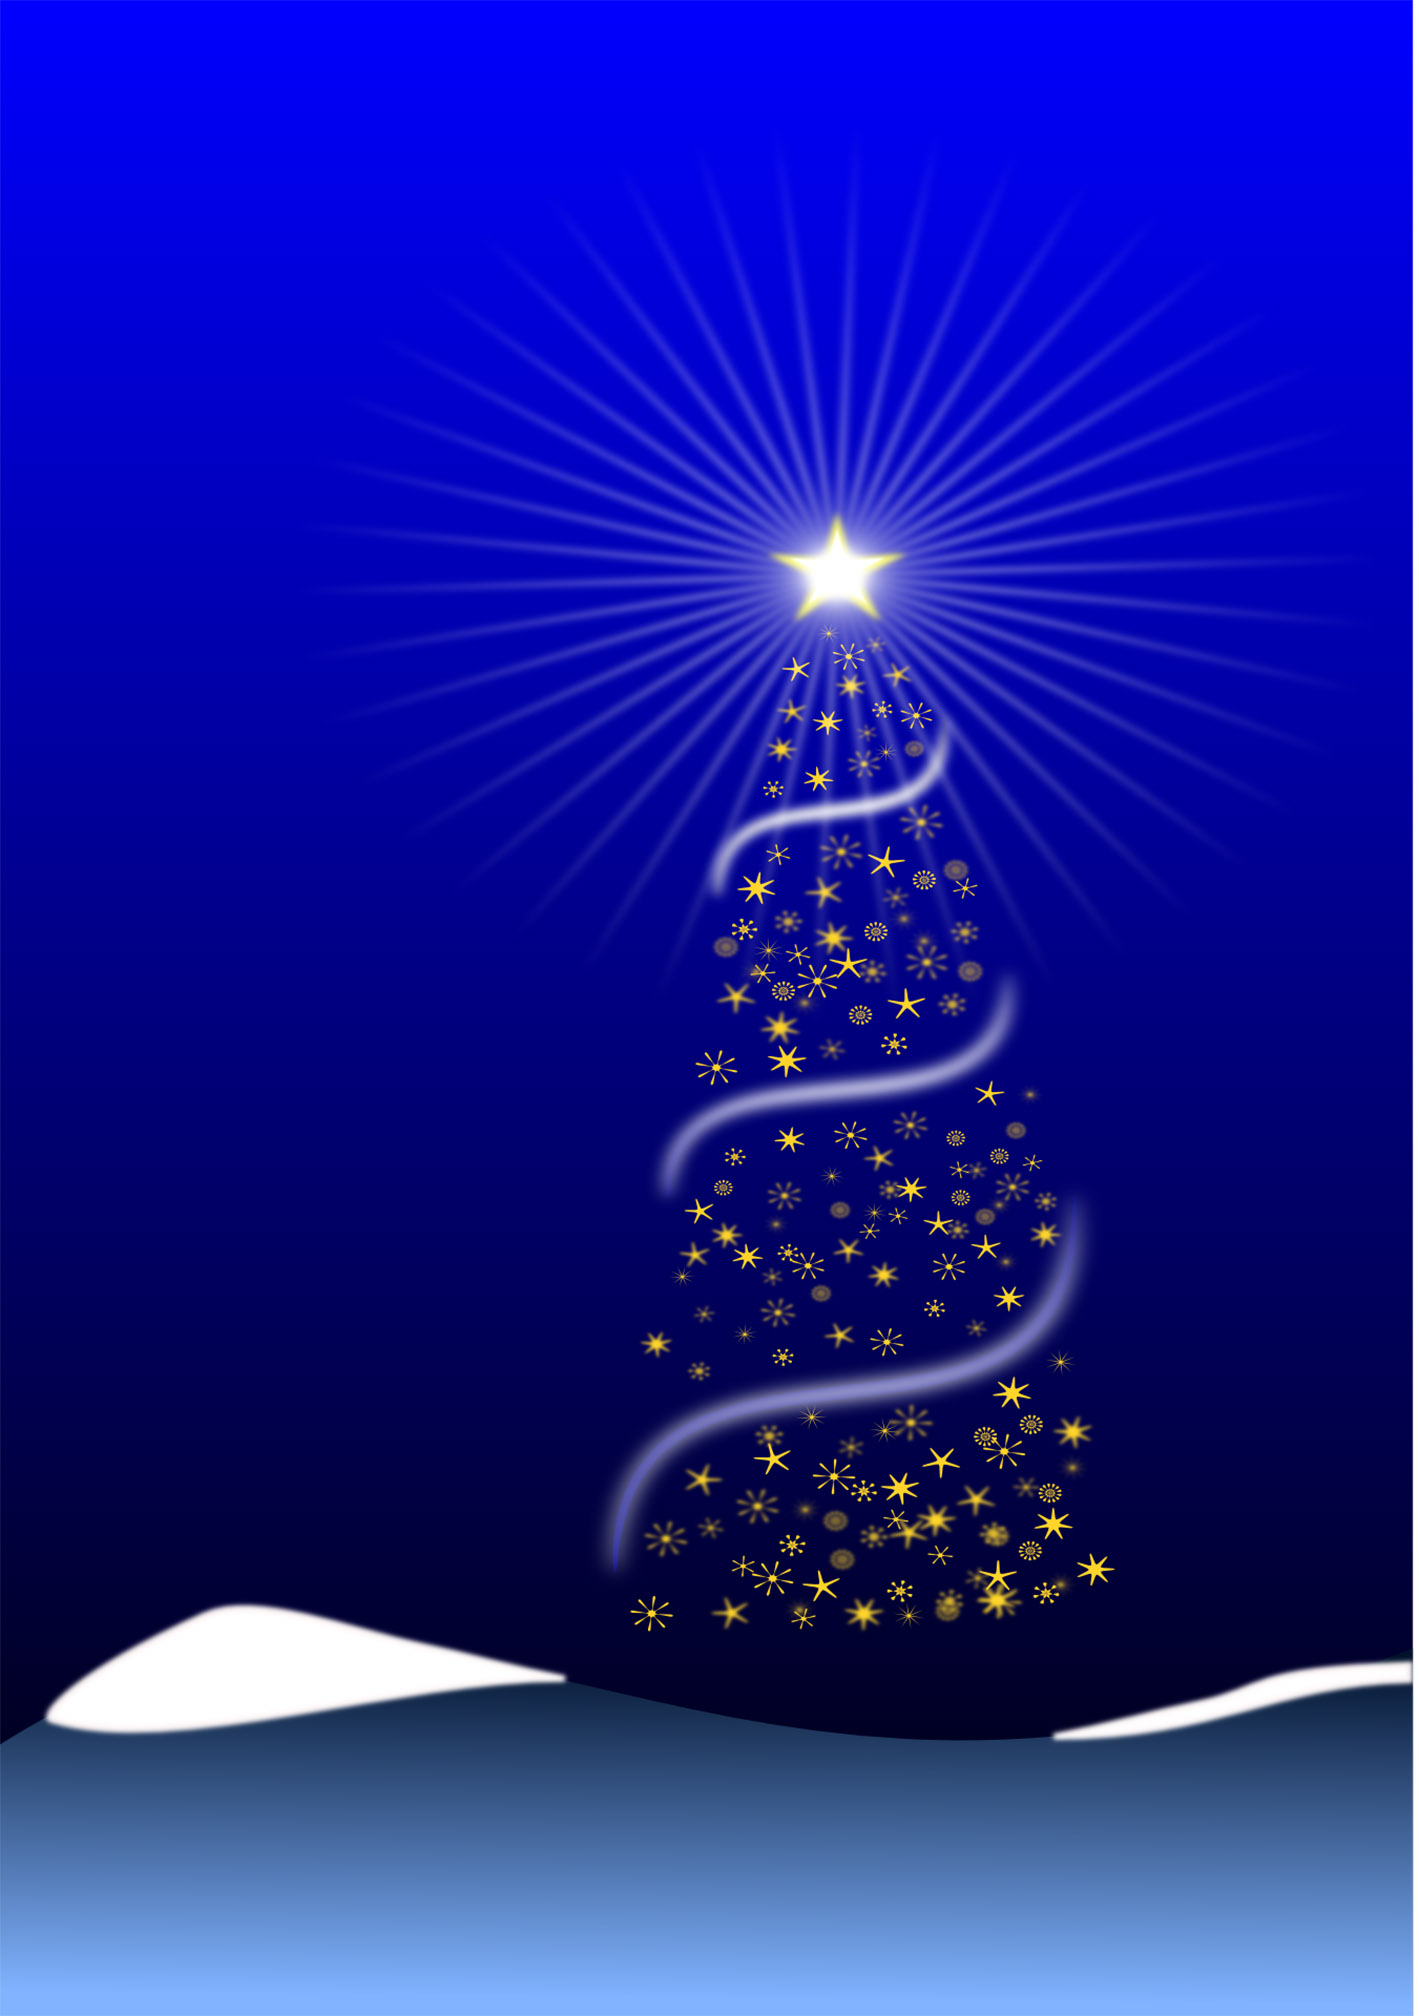 23 Christmas Tree Related Wallpapers Background Images